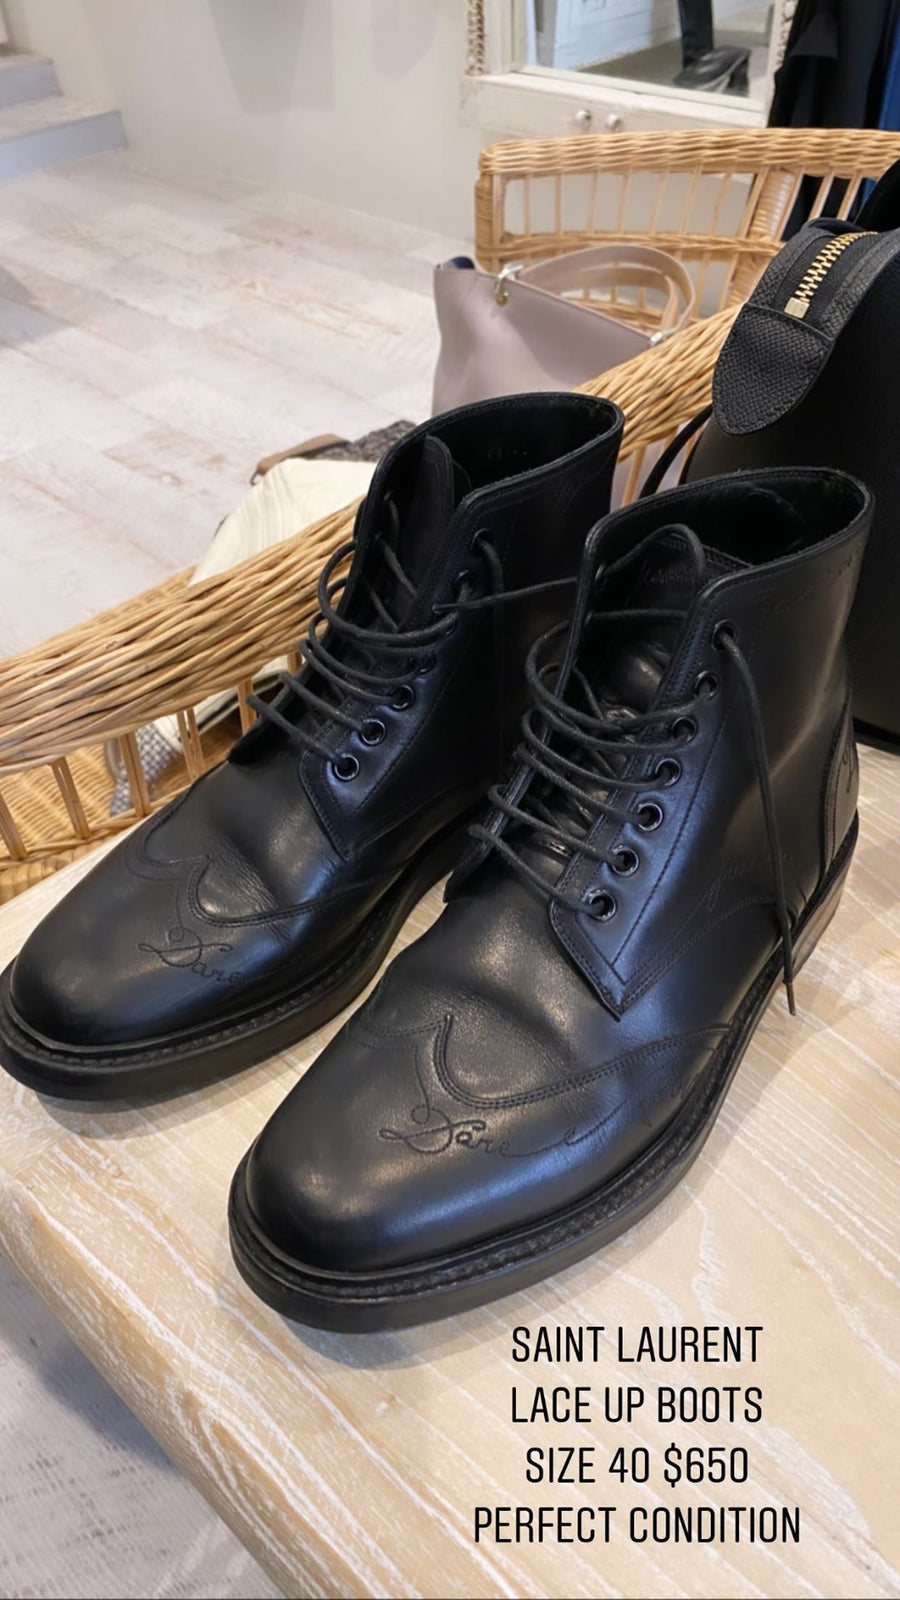 Saint Laurent lace up black boots size 40